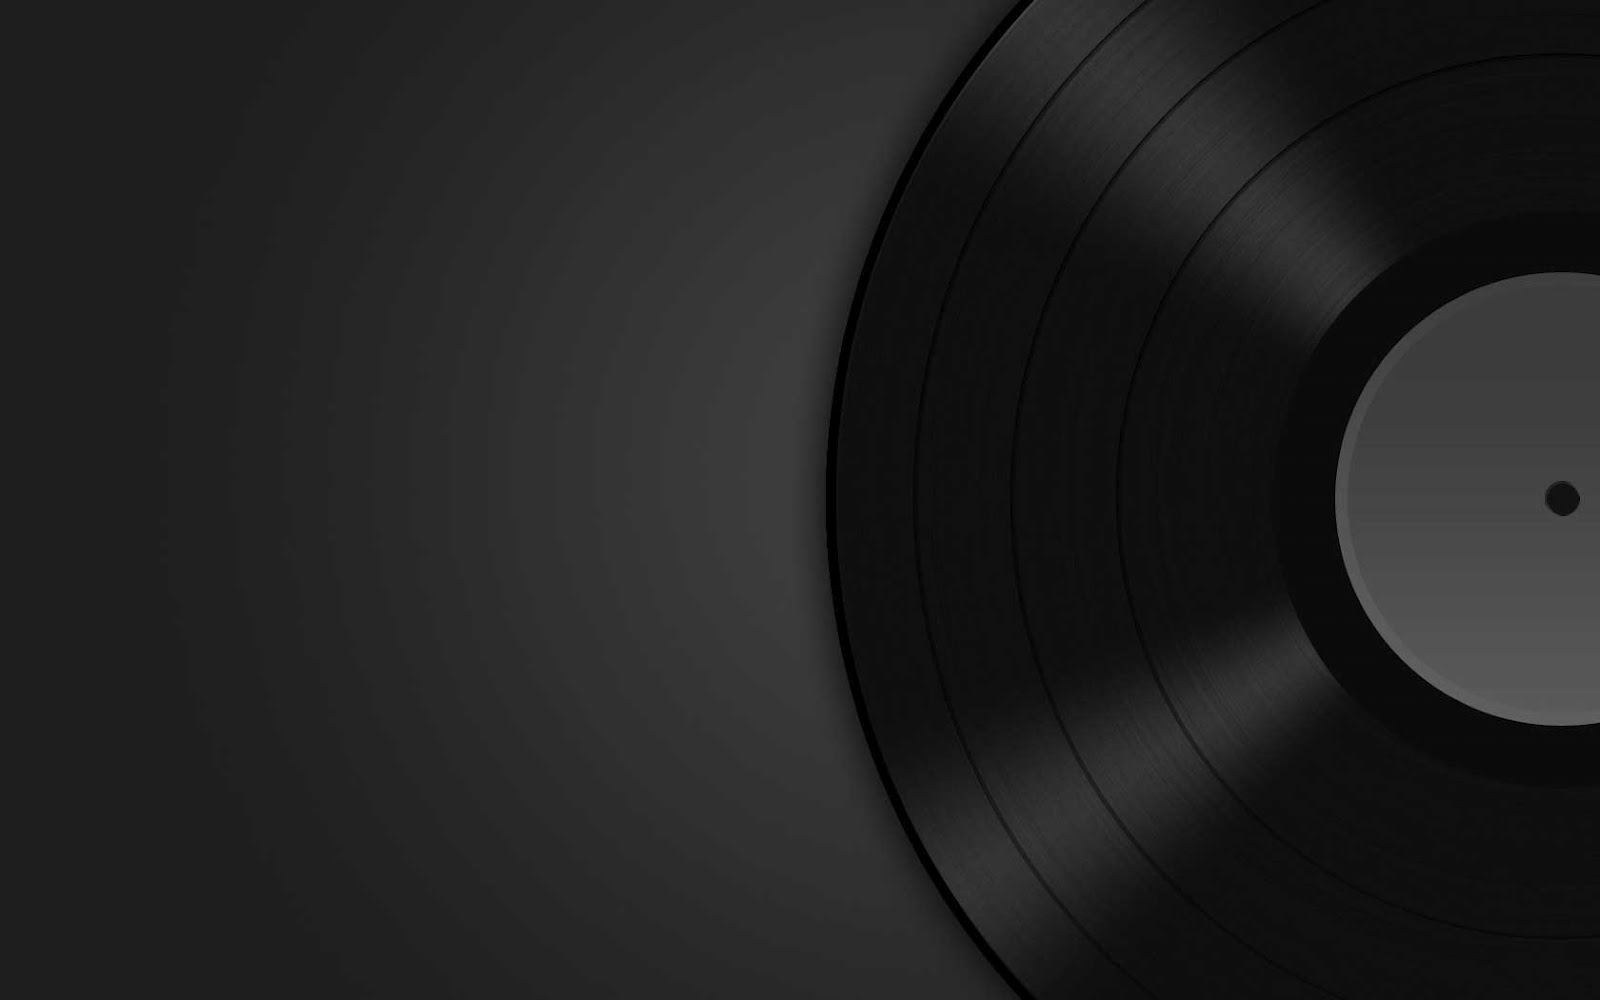 3D Music Wallpapers For Desktop | Pc Wallpapers4me